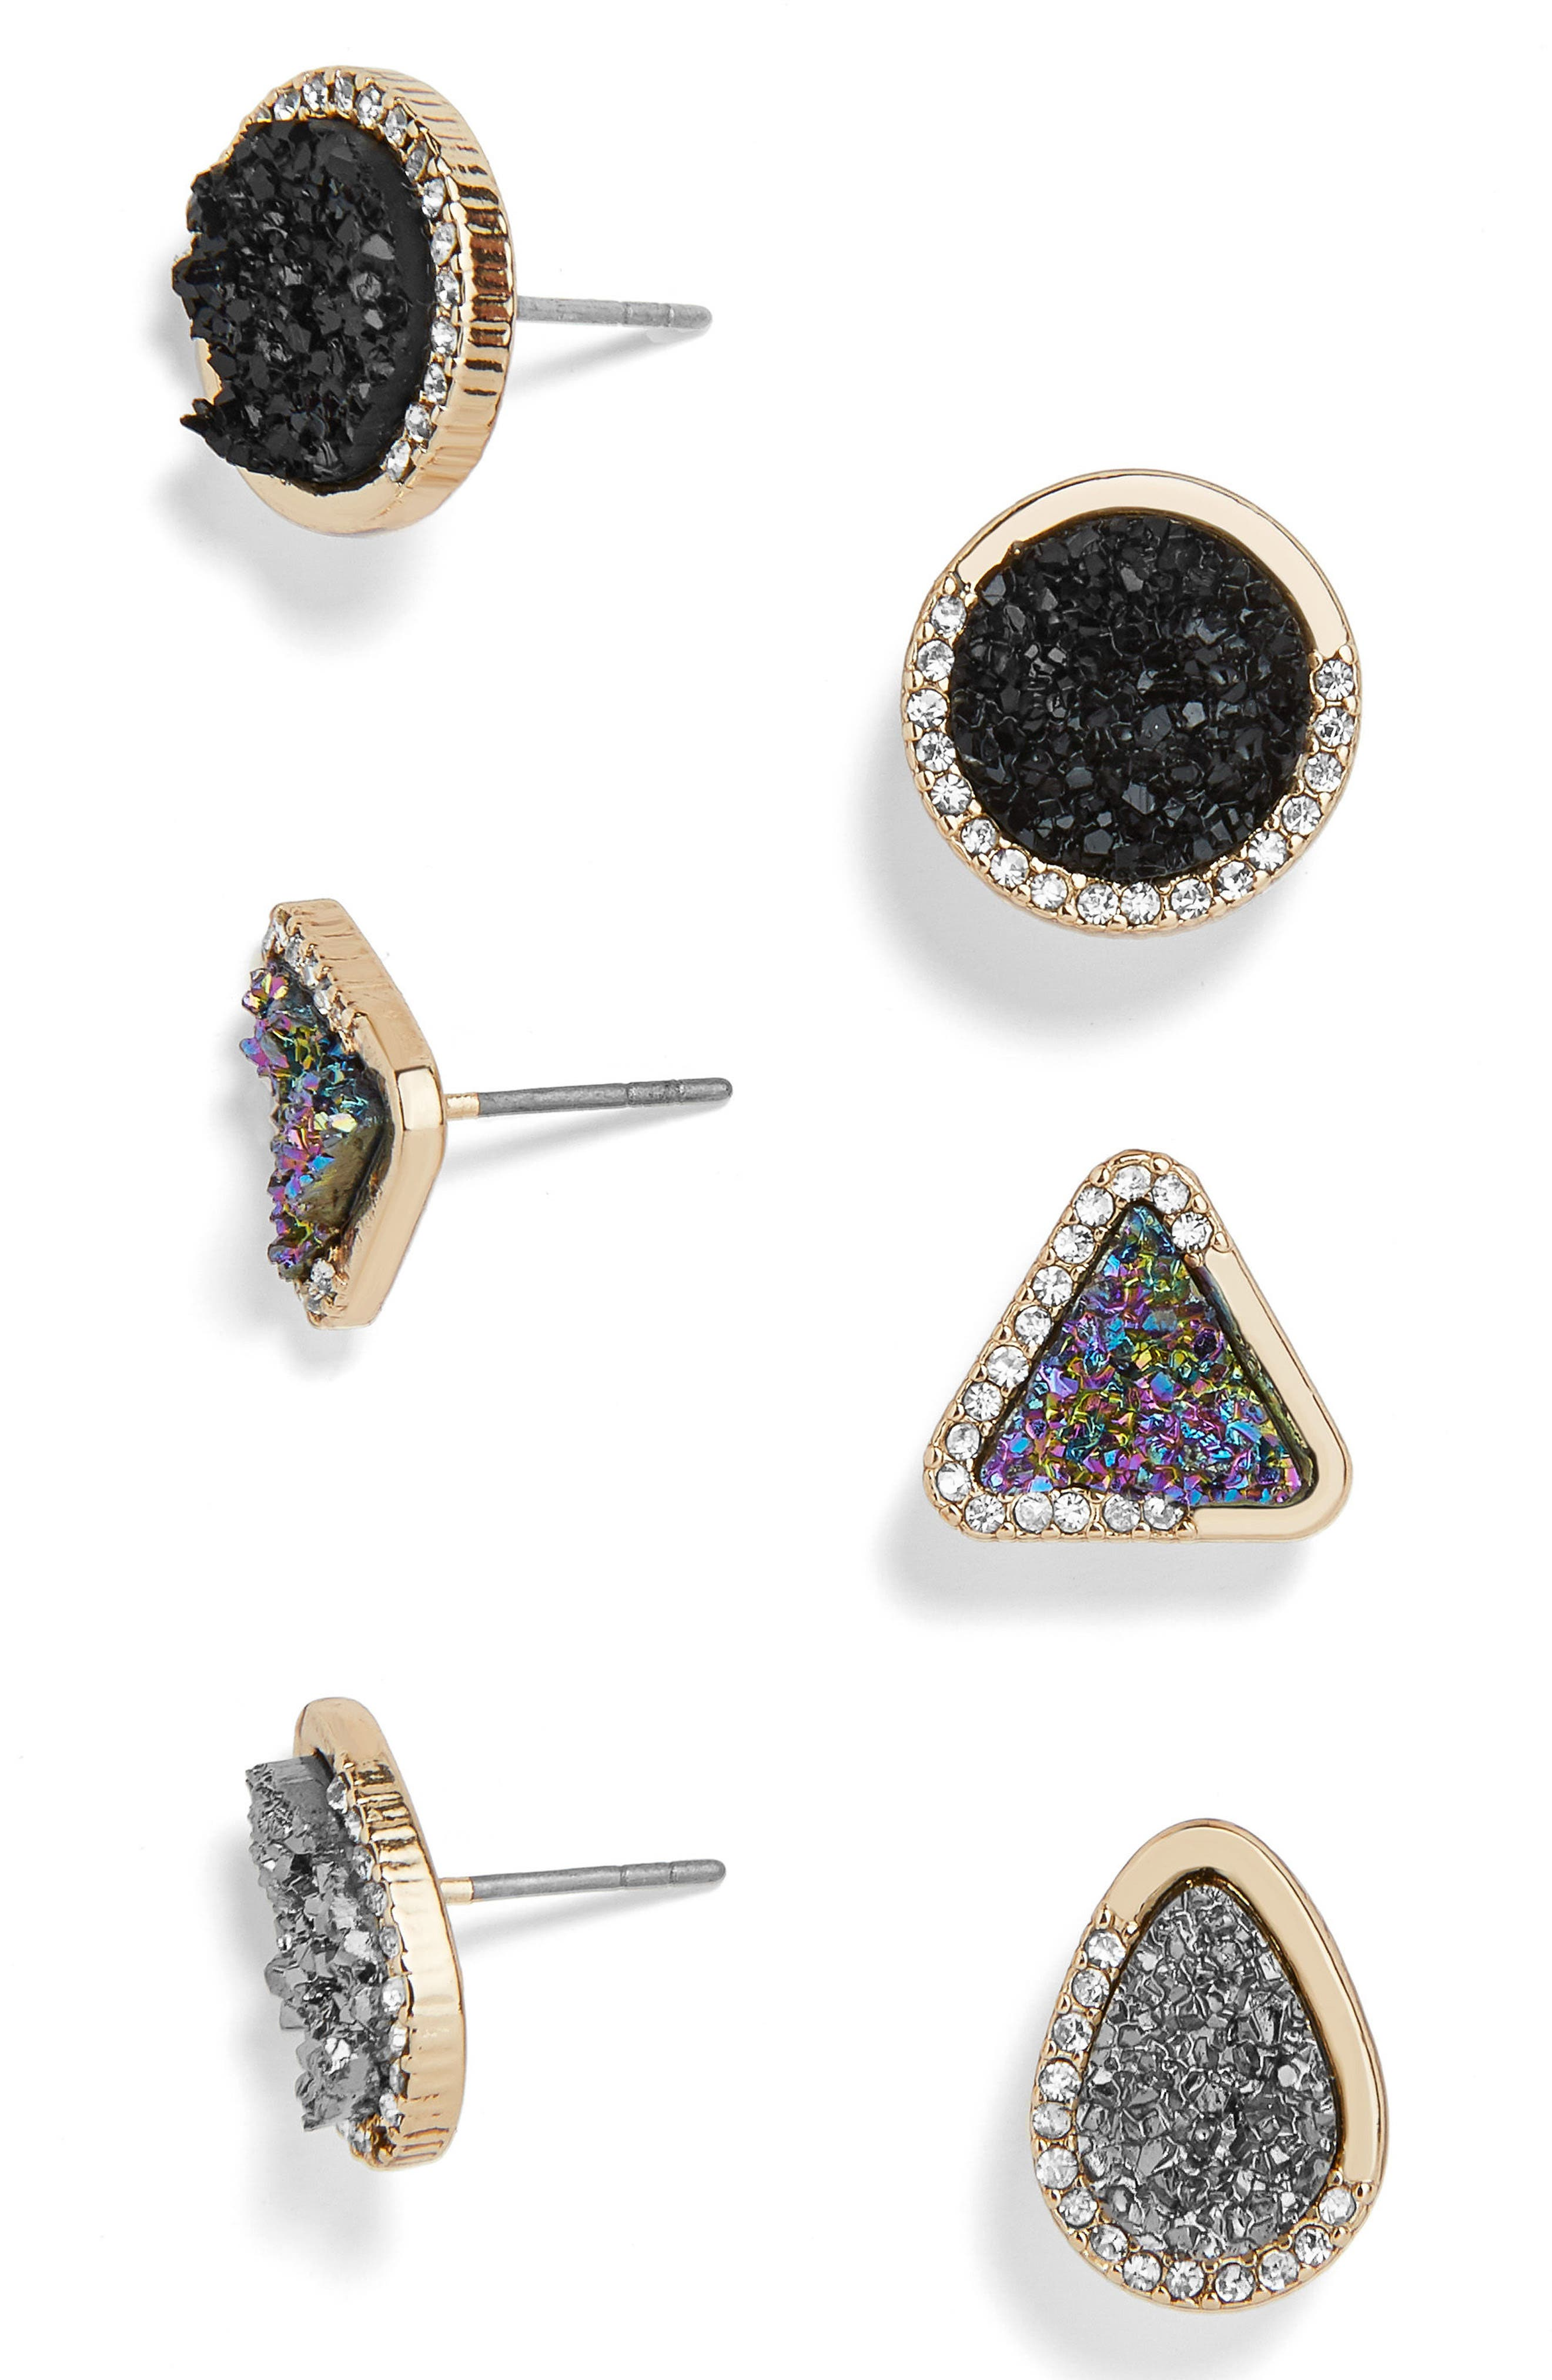 Over the Moon Set of 3 Assorted Stud Earrings,                             Main thumbnail 1, color,                             Multi